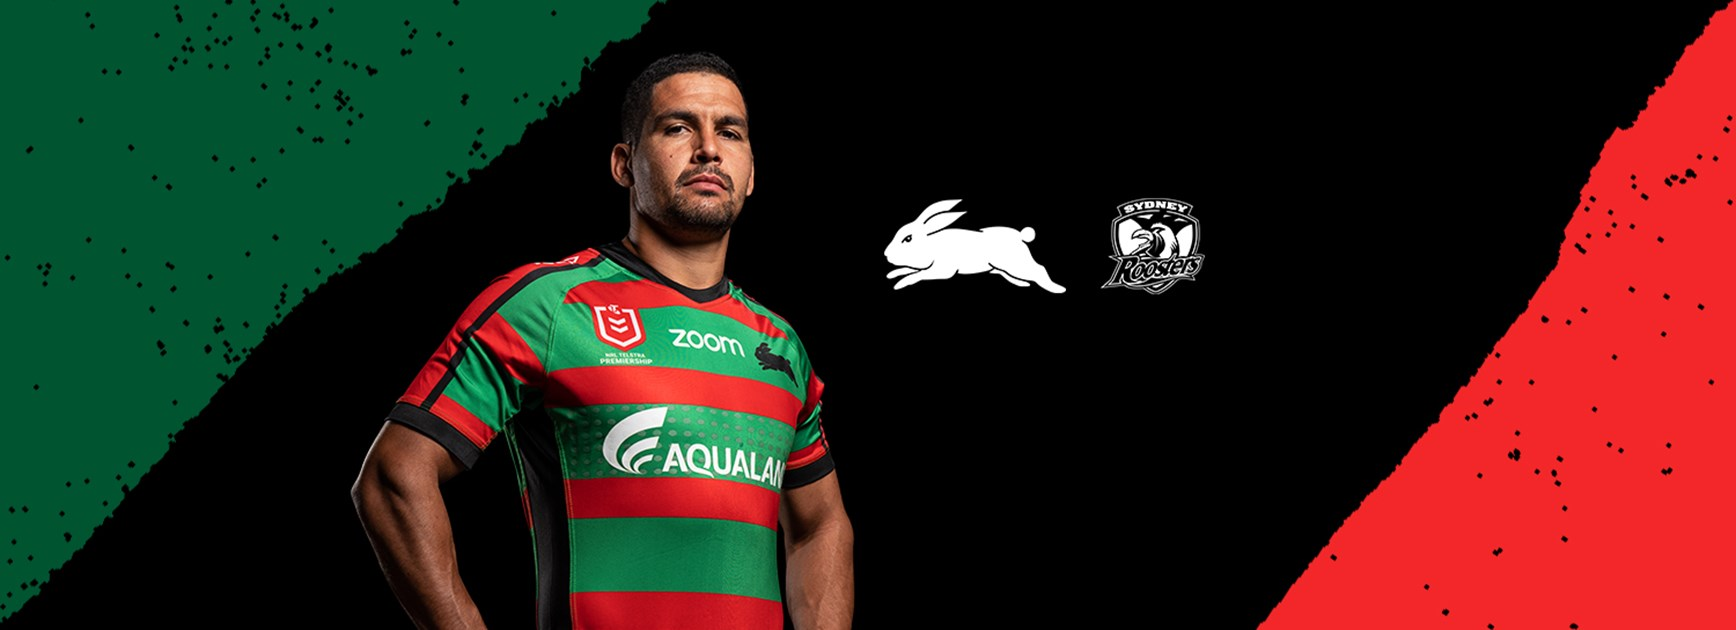 pretty nice 11c12 07023 Finals Week One NRL line up to play Roosters - Rabbitohs